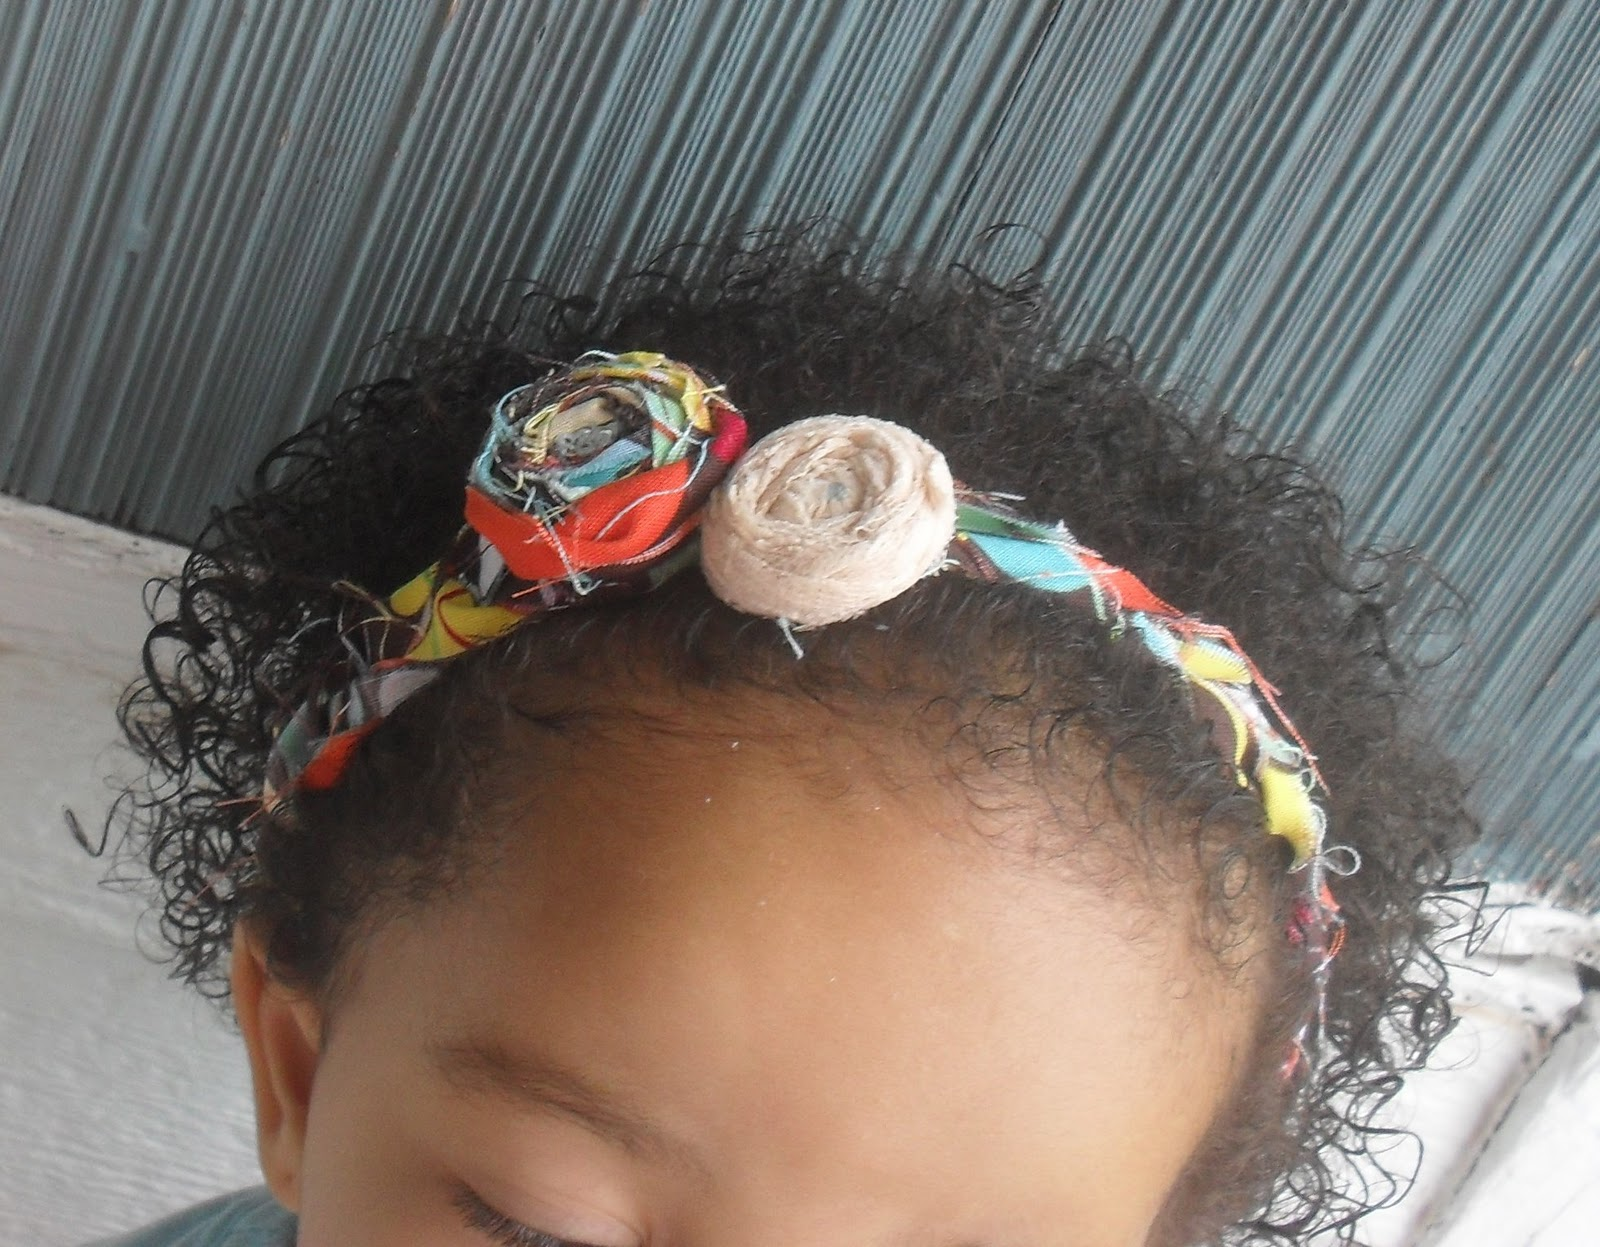 No Sew Braided Headbands DIY. October 21, by Jessica 7 Comments. -Fabric-Elastic ponytail holder-Glue (hot glue or fabric glue will do)-Measuring tape. 1. You want to cut at least 3 strips that are double the length of your head measurement and about 1″ wide. You can make the width larger or smaller depending on what you want.